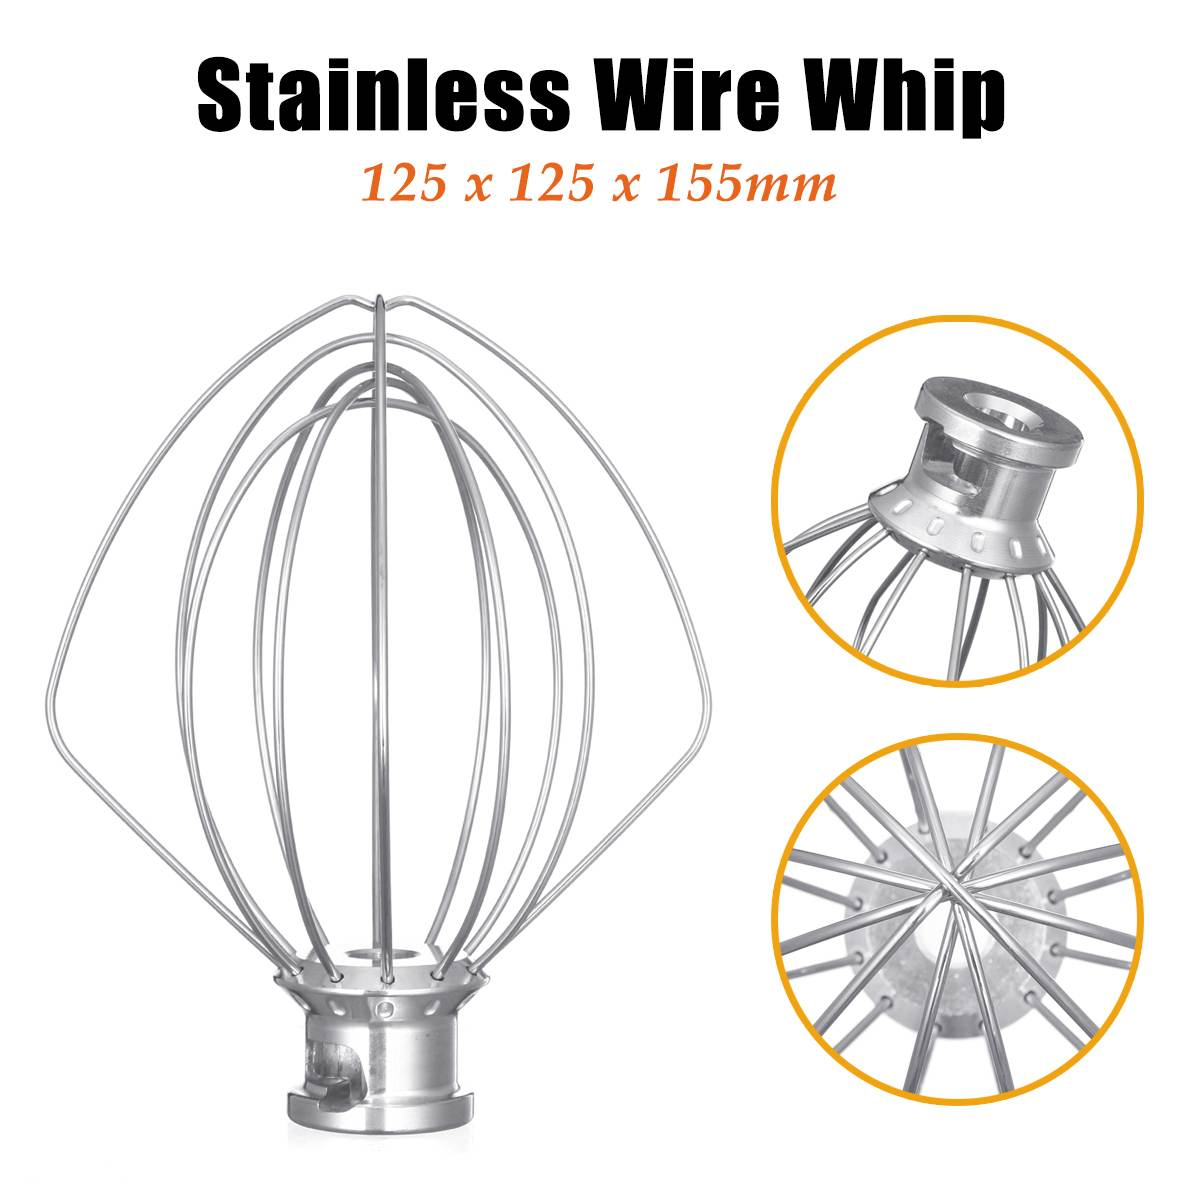 304 Stainless Steel Wire Whip Mixer Attachment For KitchenAid K45WW 9704329 Egg Cream Stirrer Flour Cake Balloon Whisk